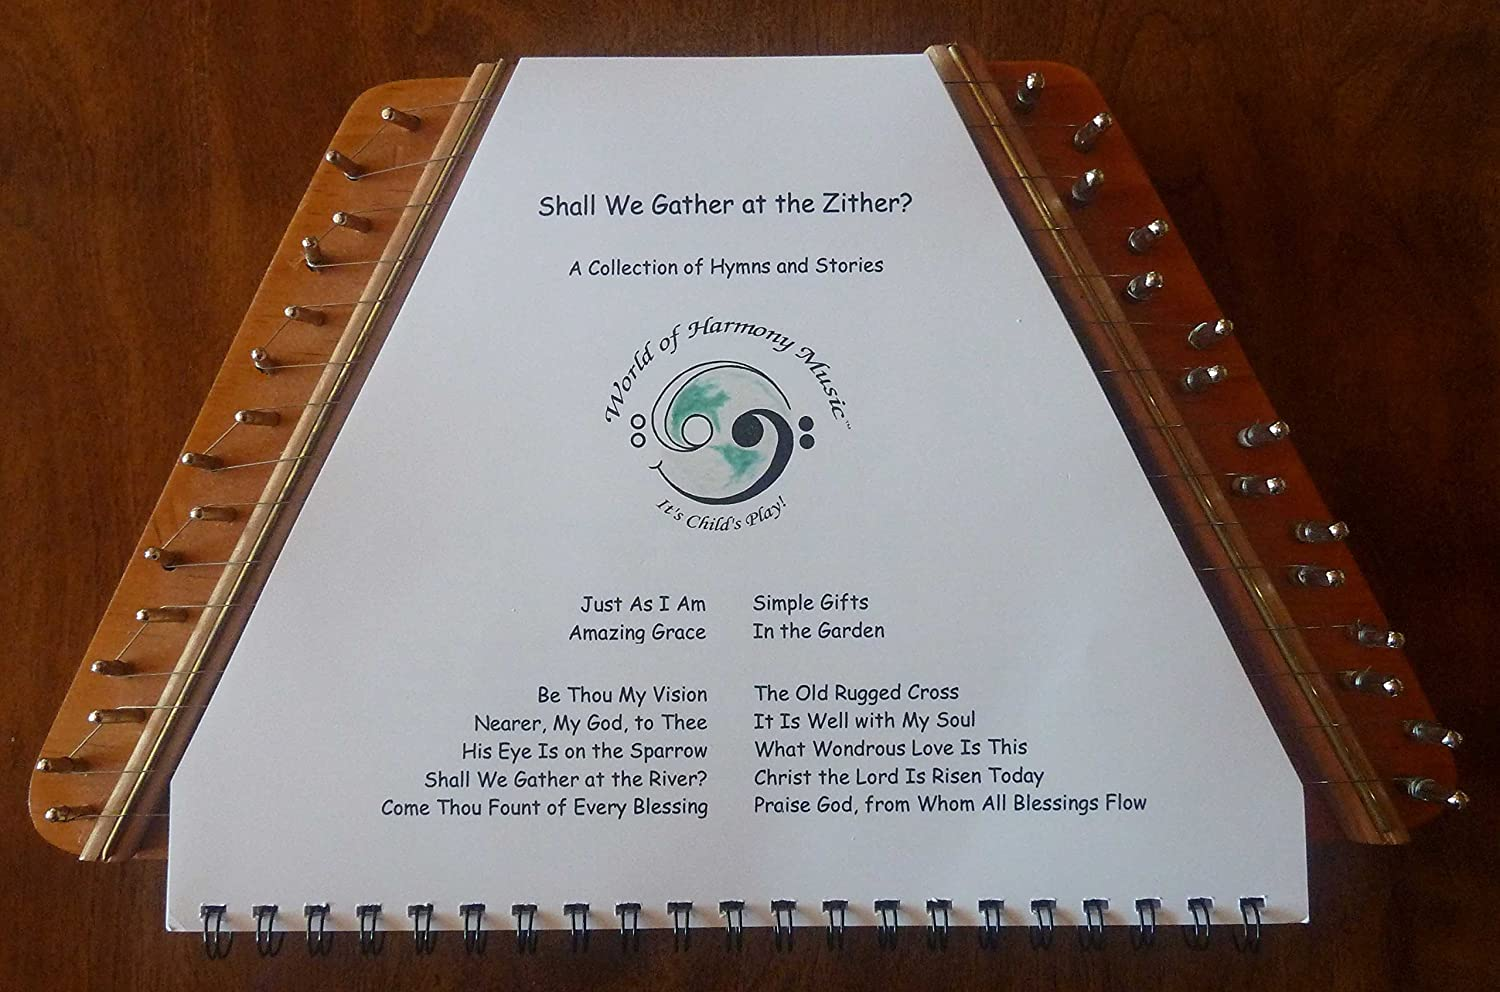 World of Harmony Music; Shall We Gather at the Zither? ~ A Collection of Hymns and Stories Arranged for Zither Debbie Center